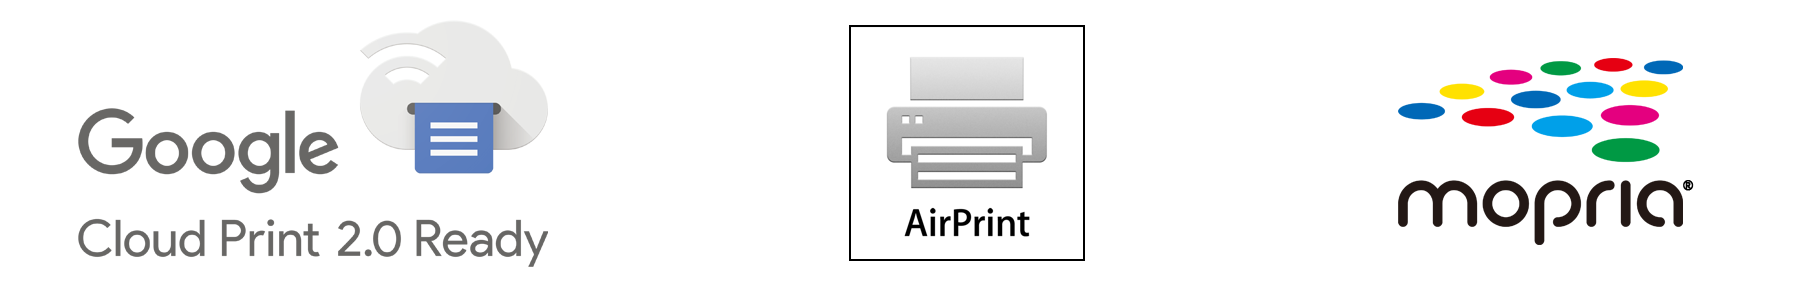 Google Cloud Print™、AirPrint、Mopria®プリント